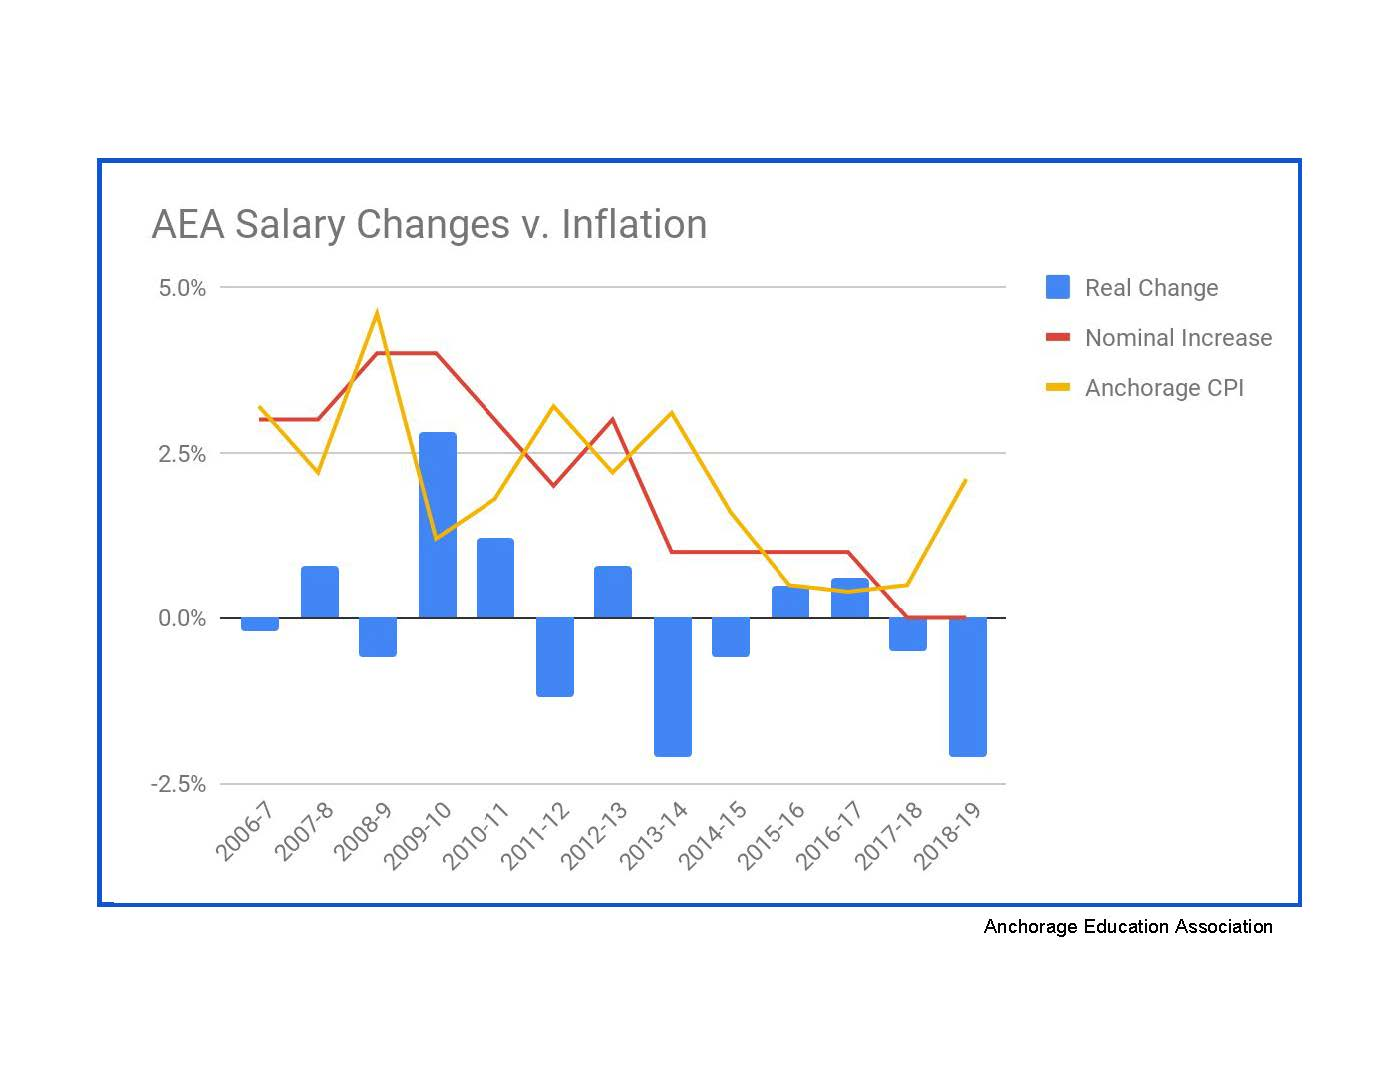 AEA Salary Changes v. Inflation   * This graph demonstrates the relationship between actual salary schedule increases and the corresponding Anchorage annual inflation rates. The fact is that educator salaries have been stagnant over the last decade in real terms. The CAEPR study cited above stated that Anchorage educators were 10% underpaid in 2015 and there has already been about 3% inflation since then.